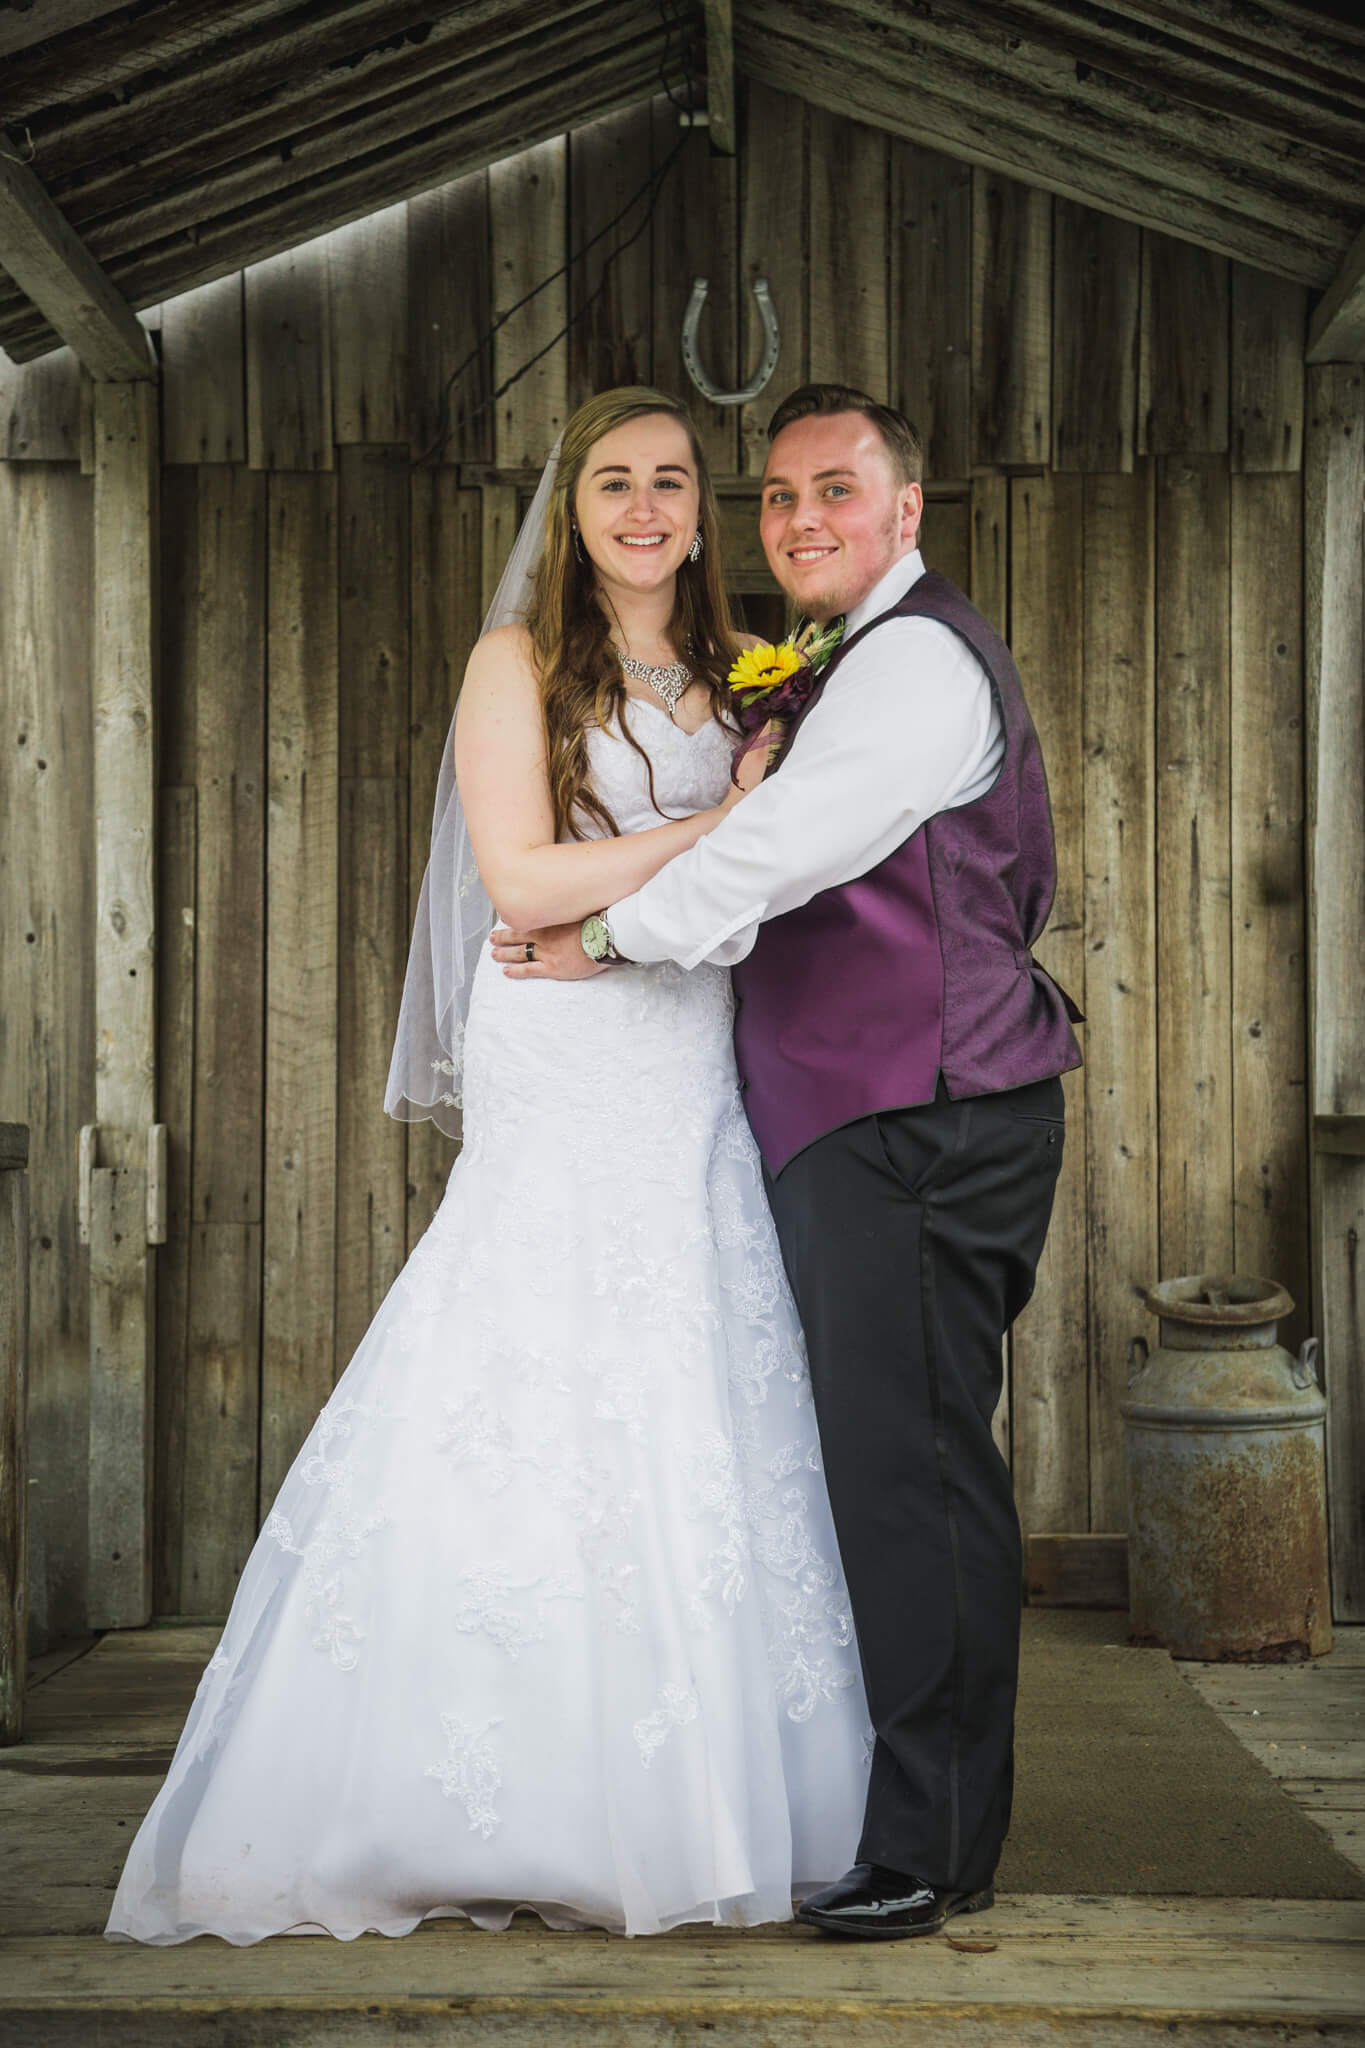 Mitcham's Barn Wedding-193.JPG